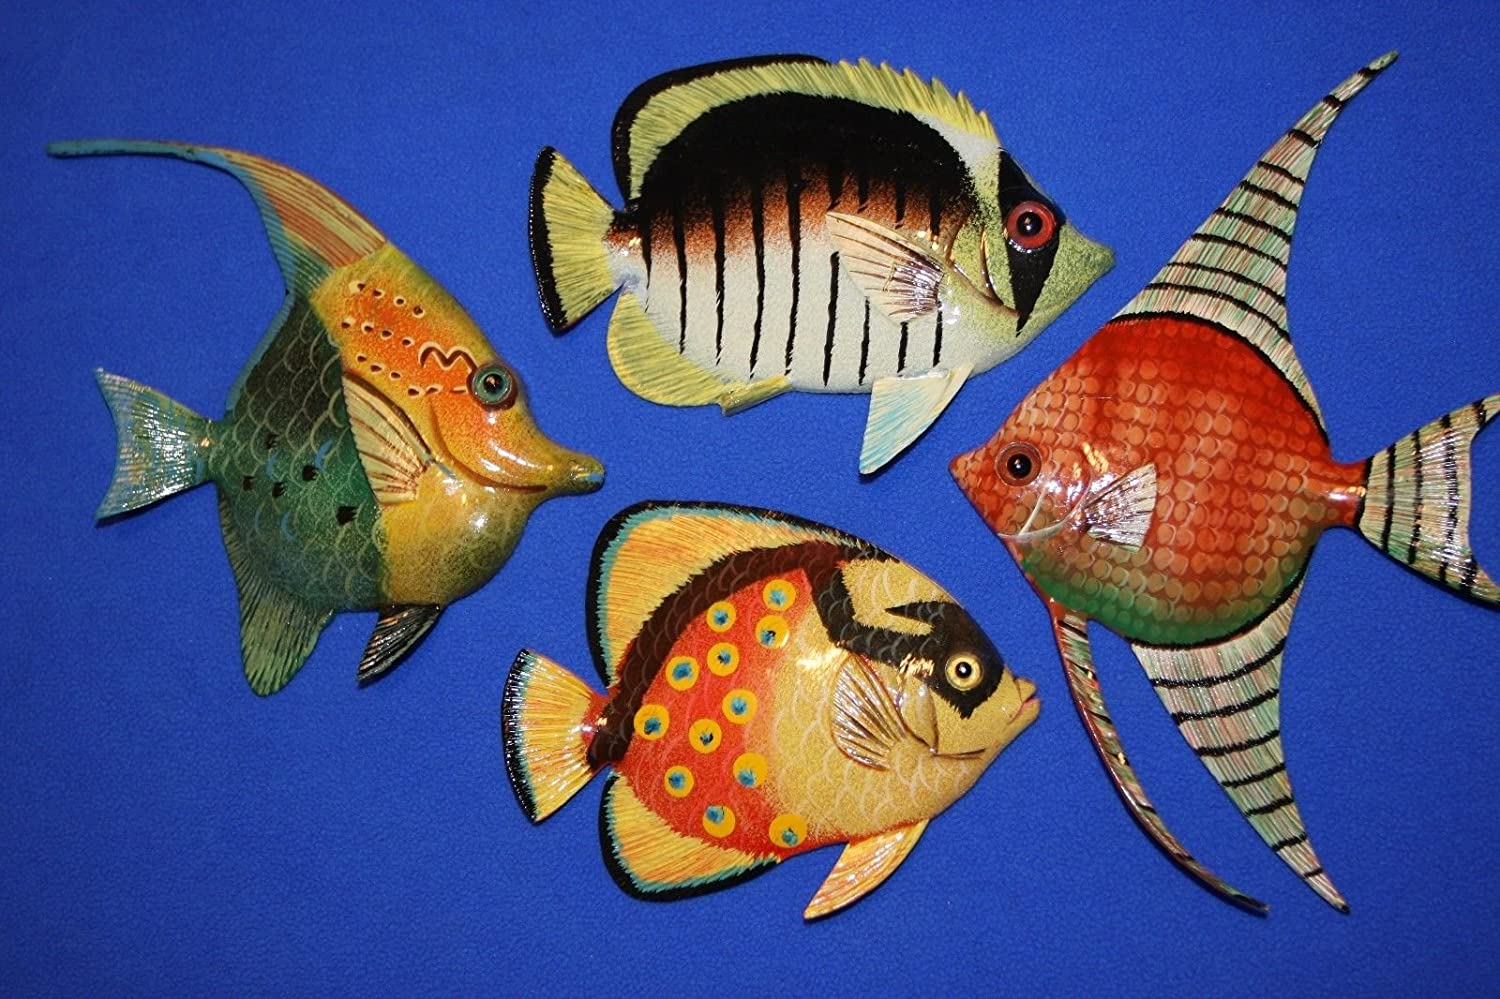 Salty Pelican Colorful Sea Life 3 - D poly-resin魚子供部屋壁装飾、6インチ、バンドル4魚   B07DPTTW35